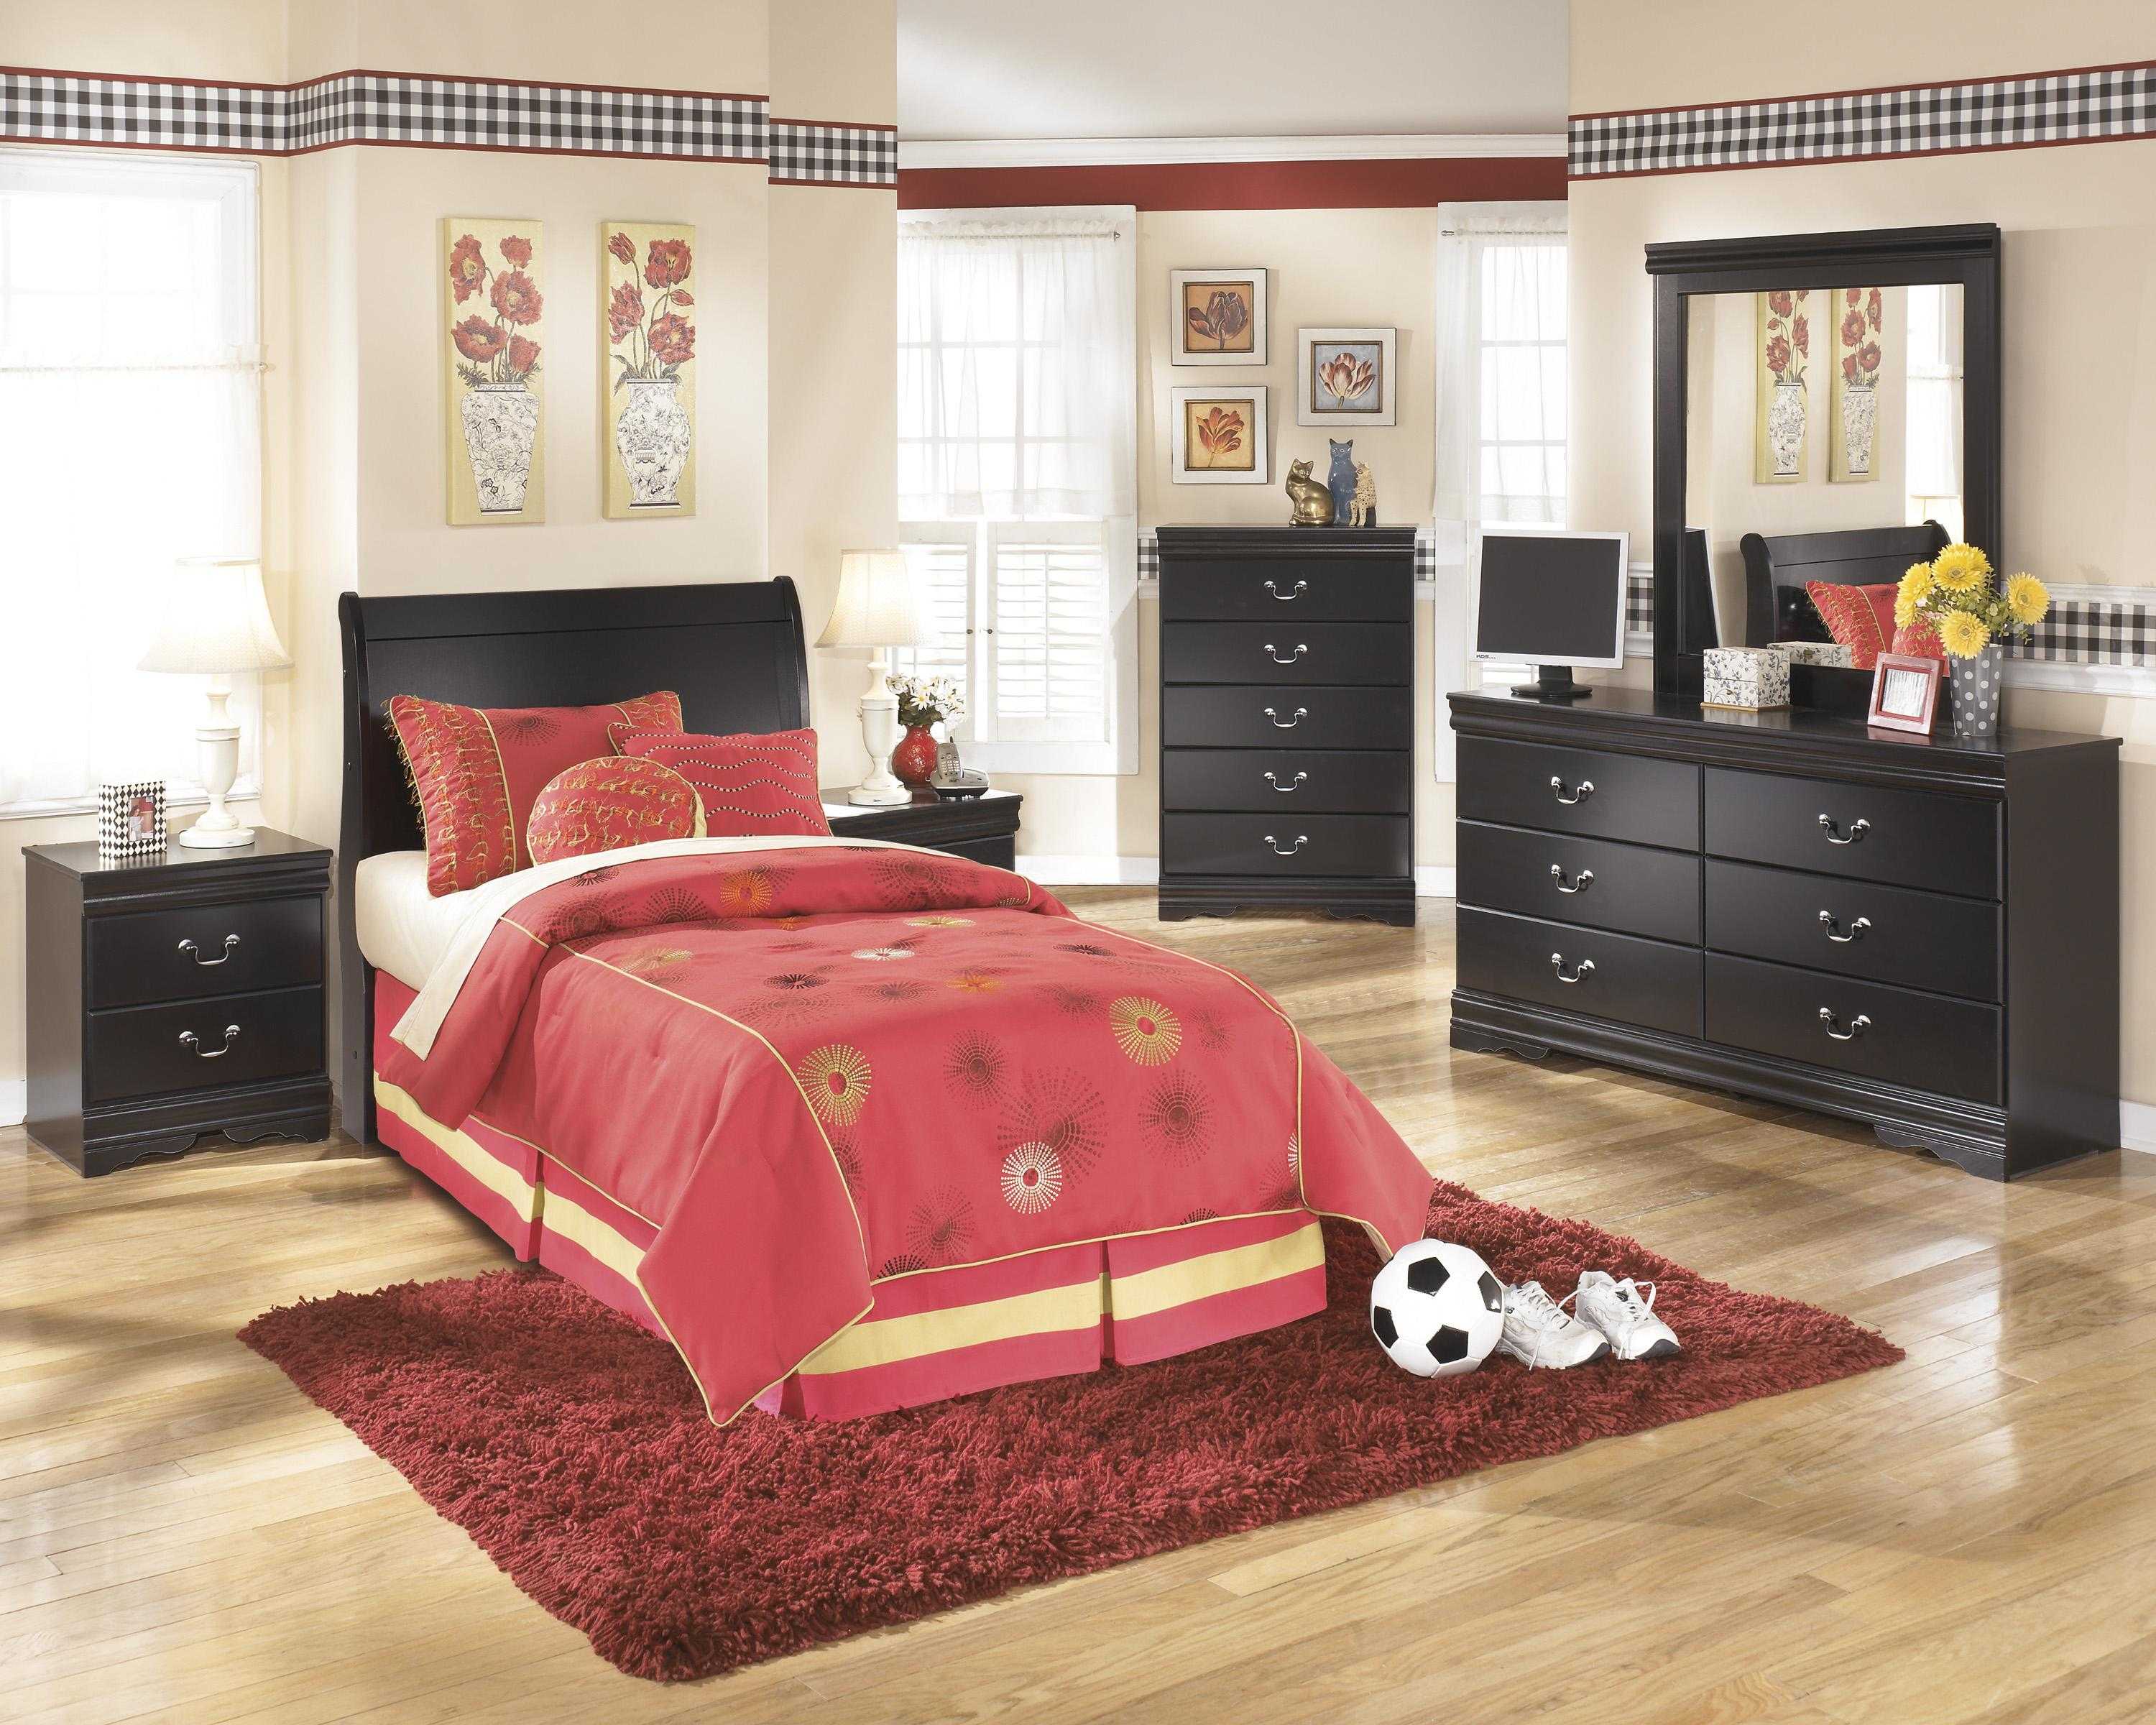 Huey Vineyard Twin Bedroom Group by Signature Design by Ashley at Smart Buy Furniture